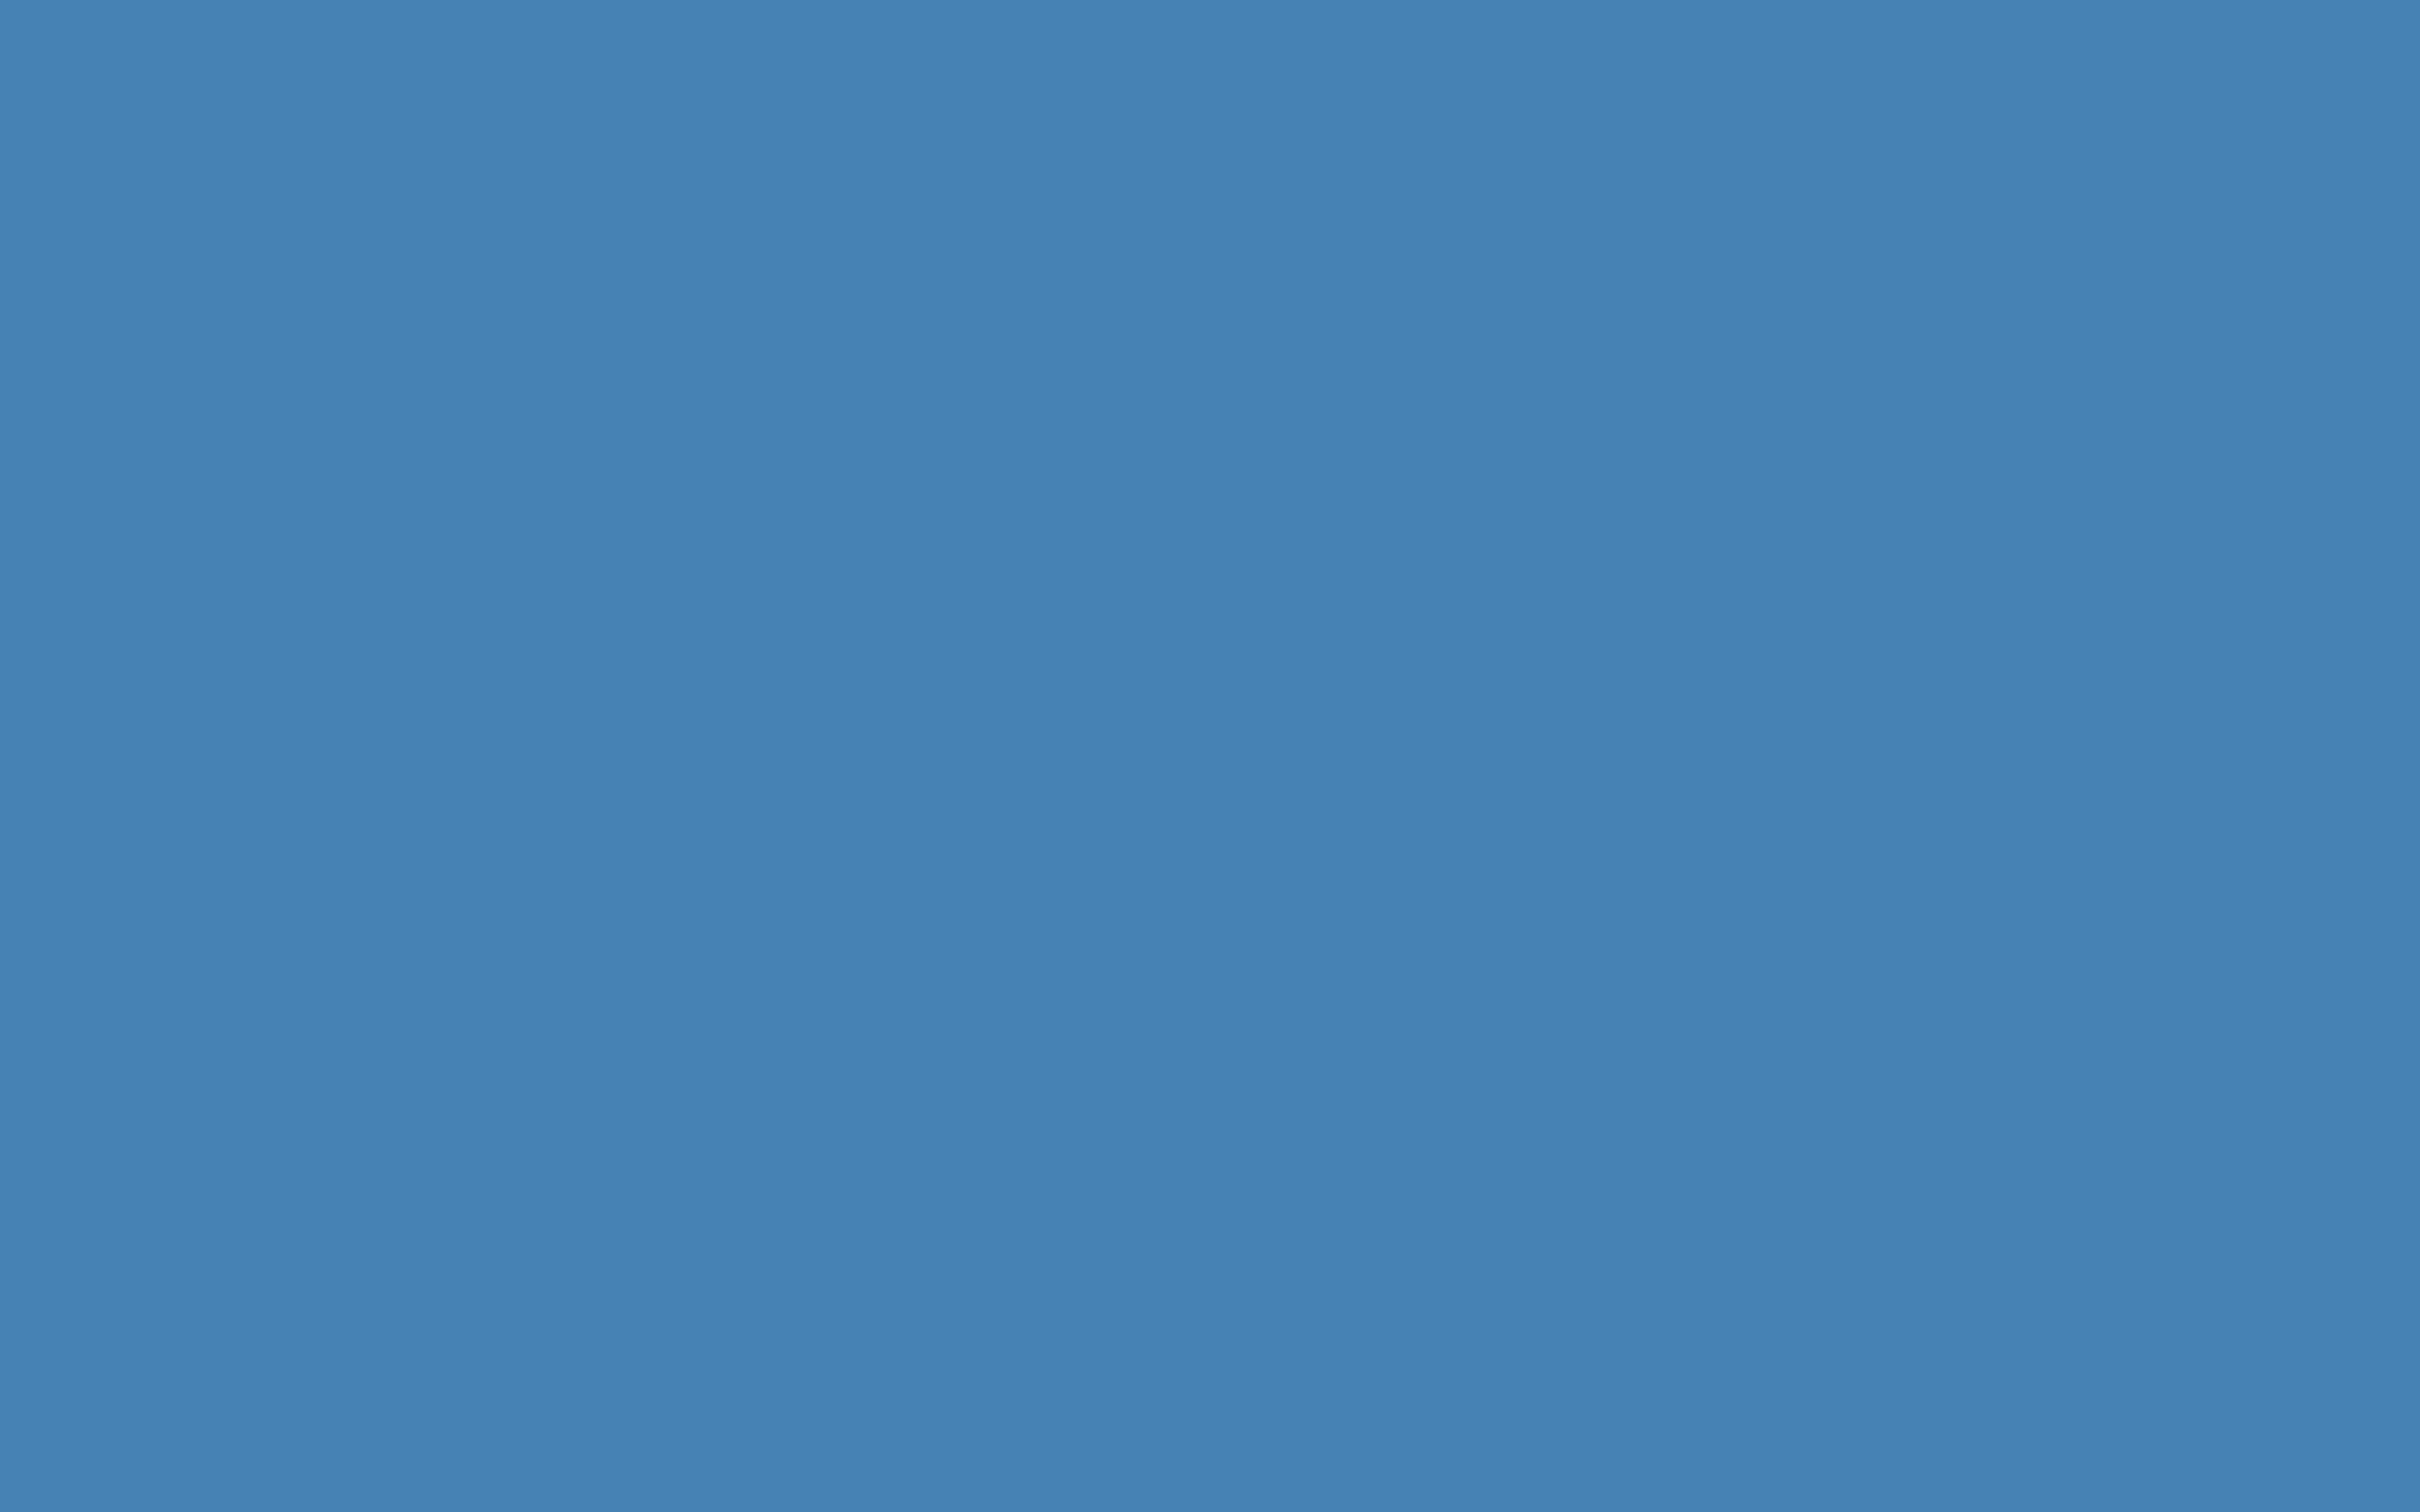 2560x1600 Steel Blue Solid Color Background